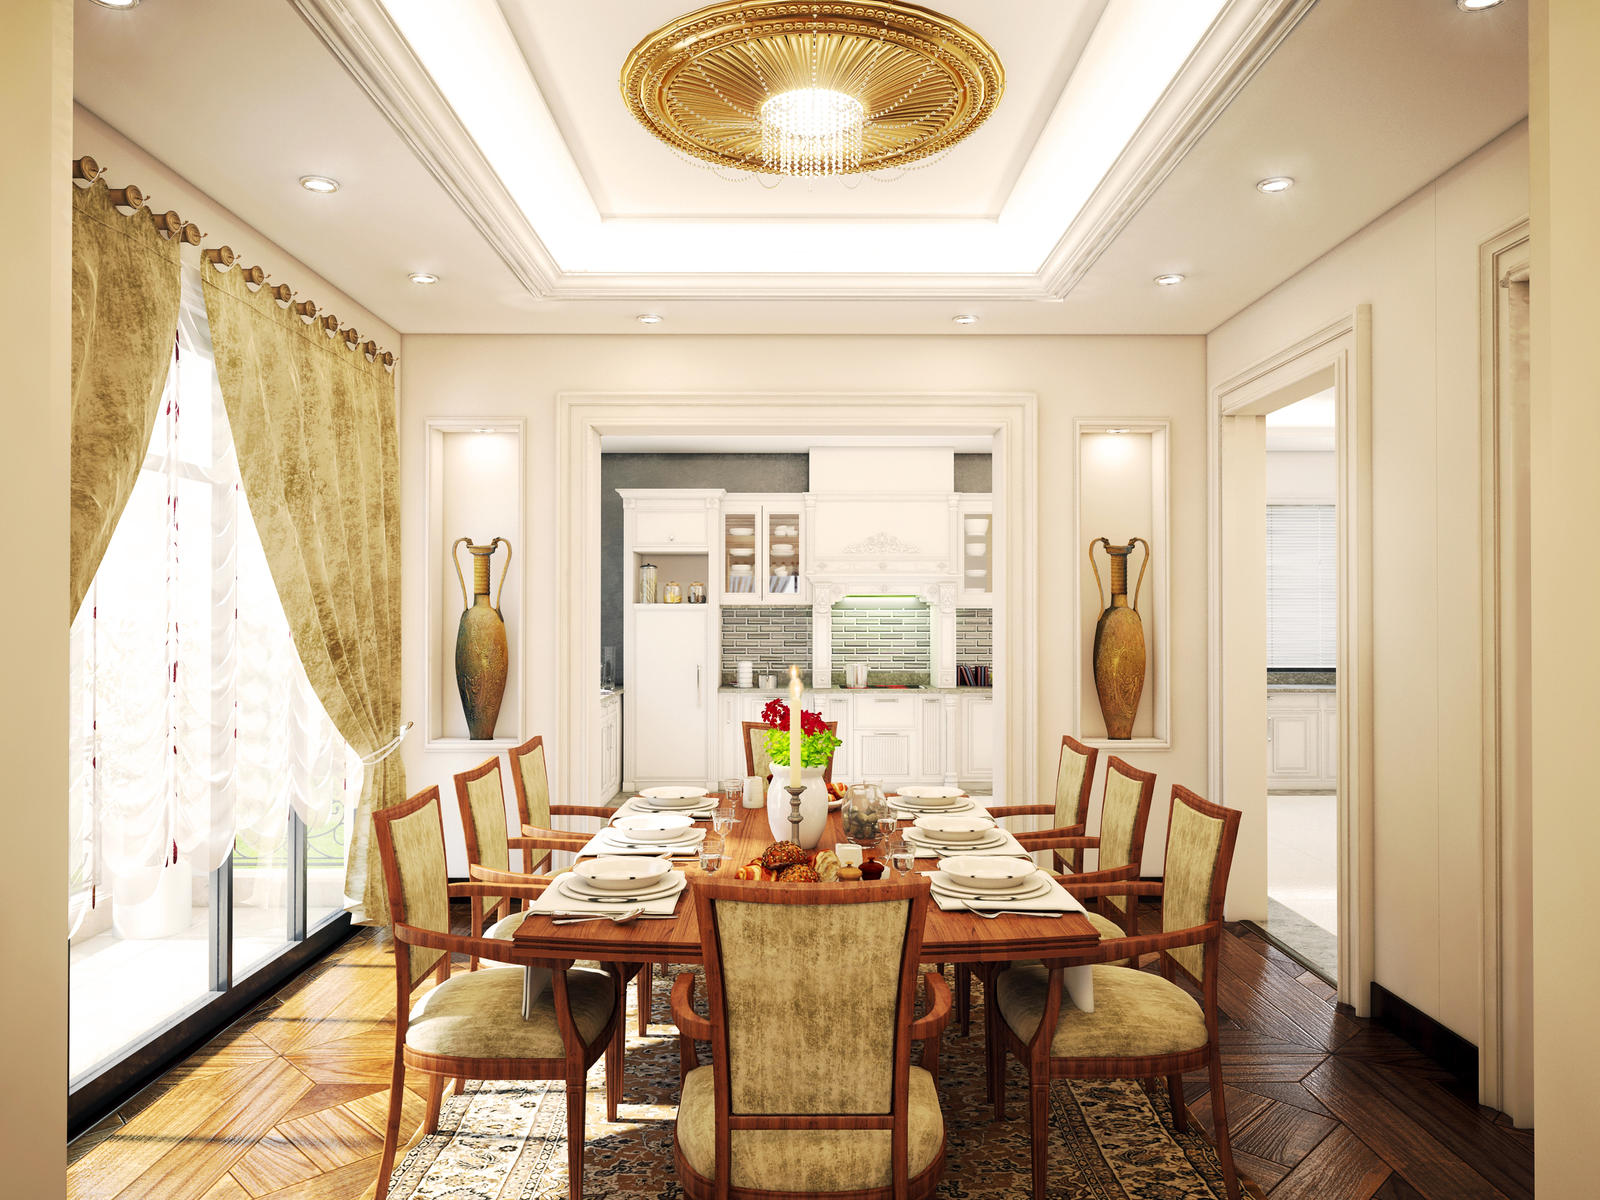 Classic Dining Room By Kasrawy On DeviantArt